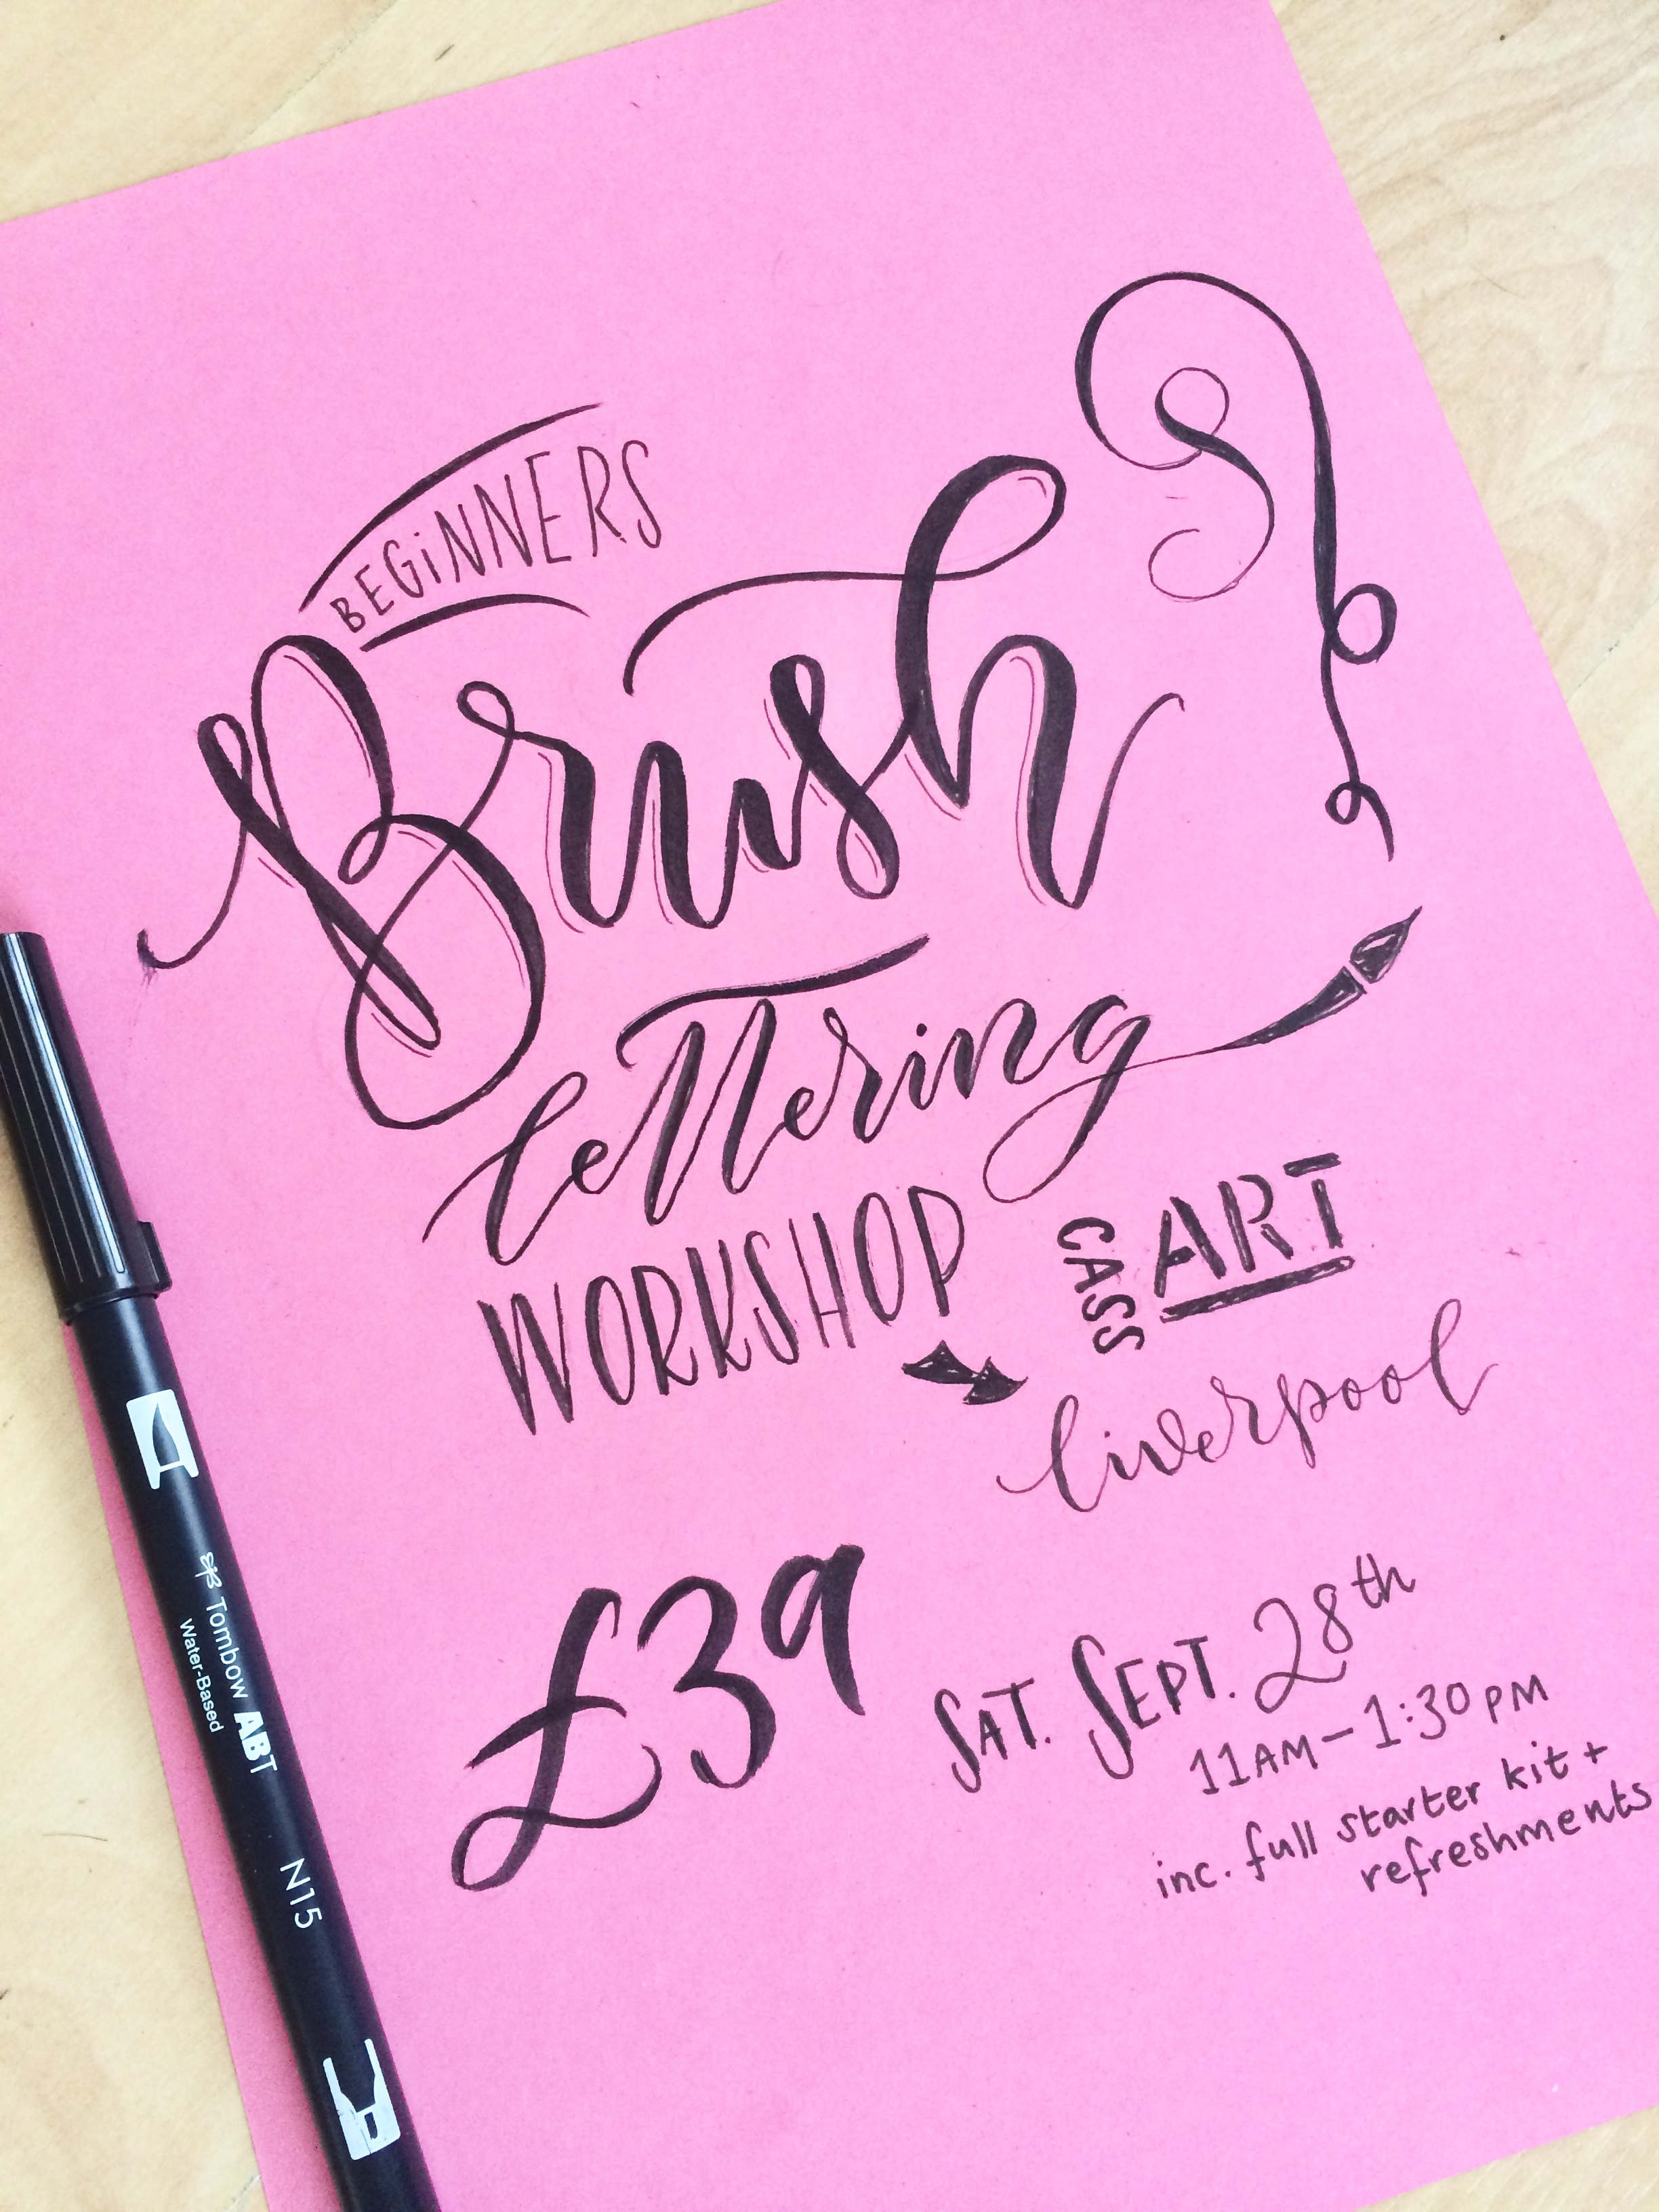 Beginners Modern Calligraphy workshop at CASS Art Liverpool with Mellor and Rose